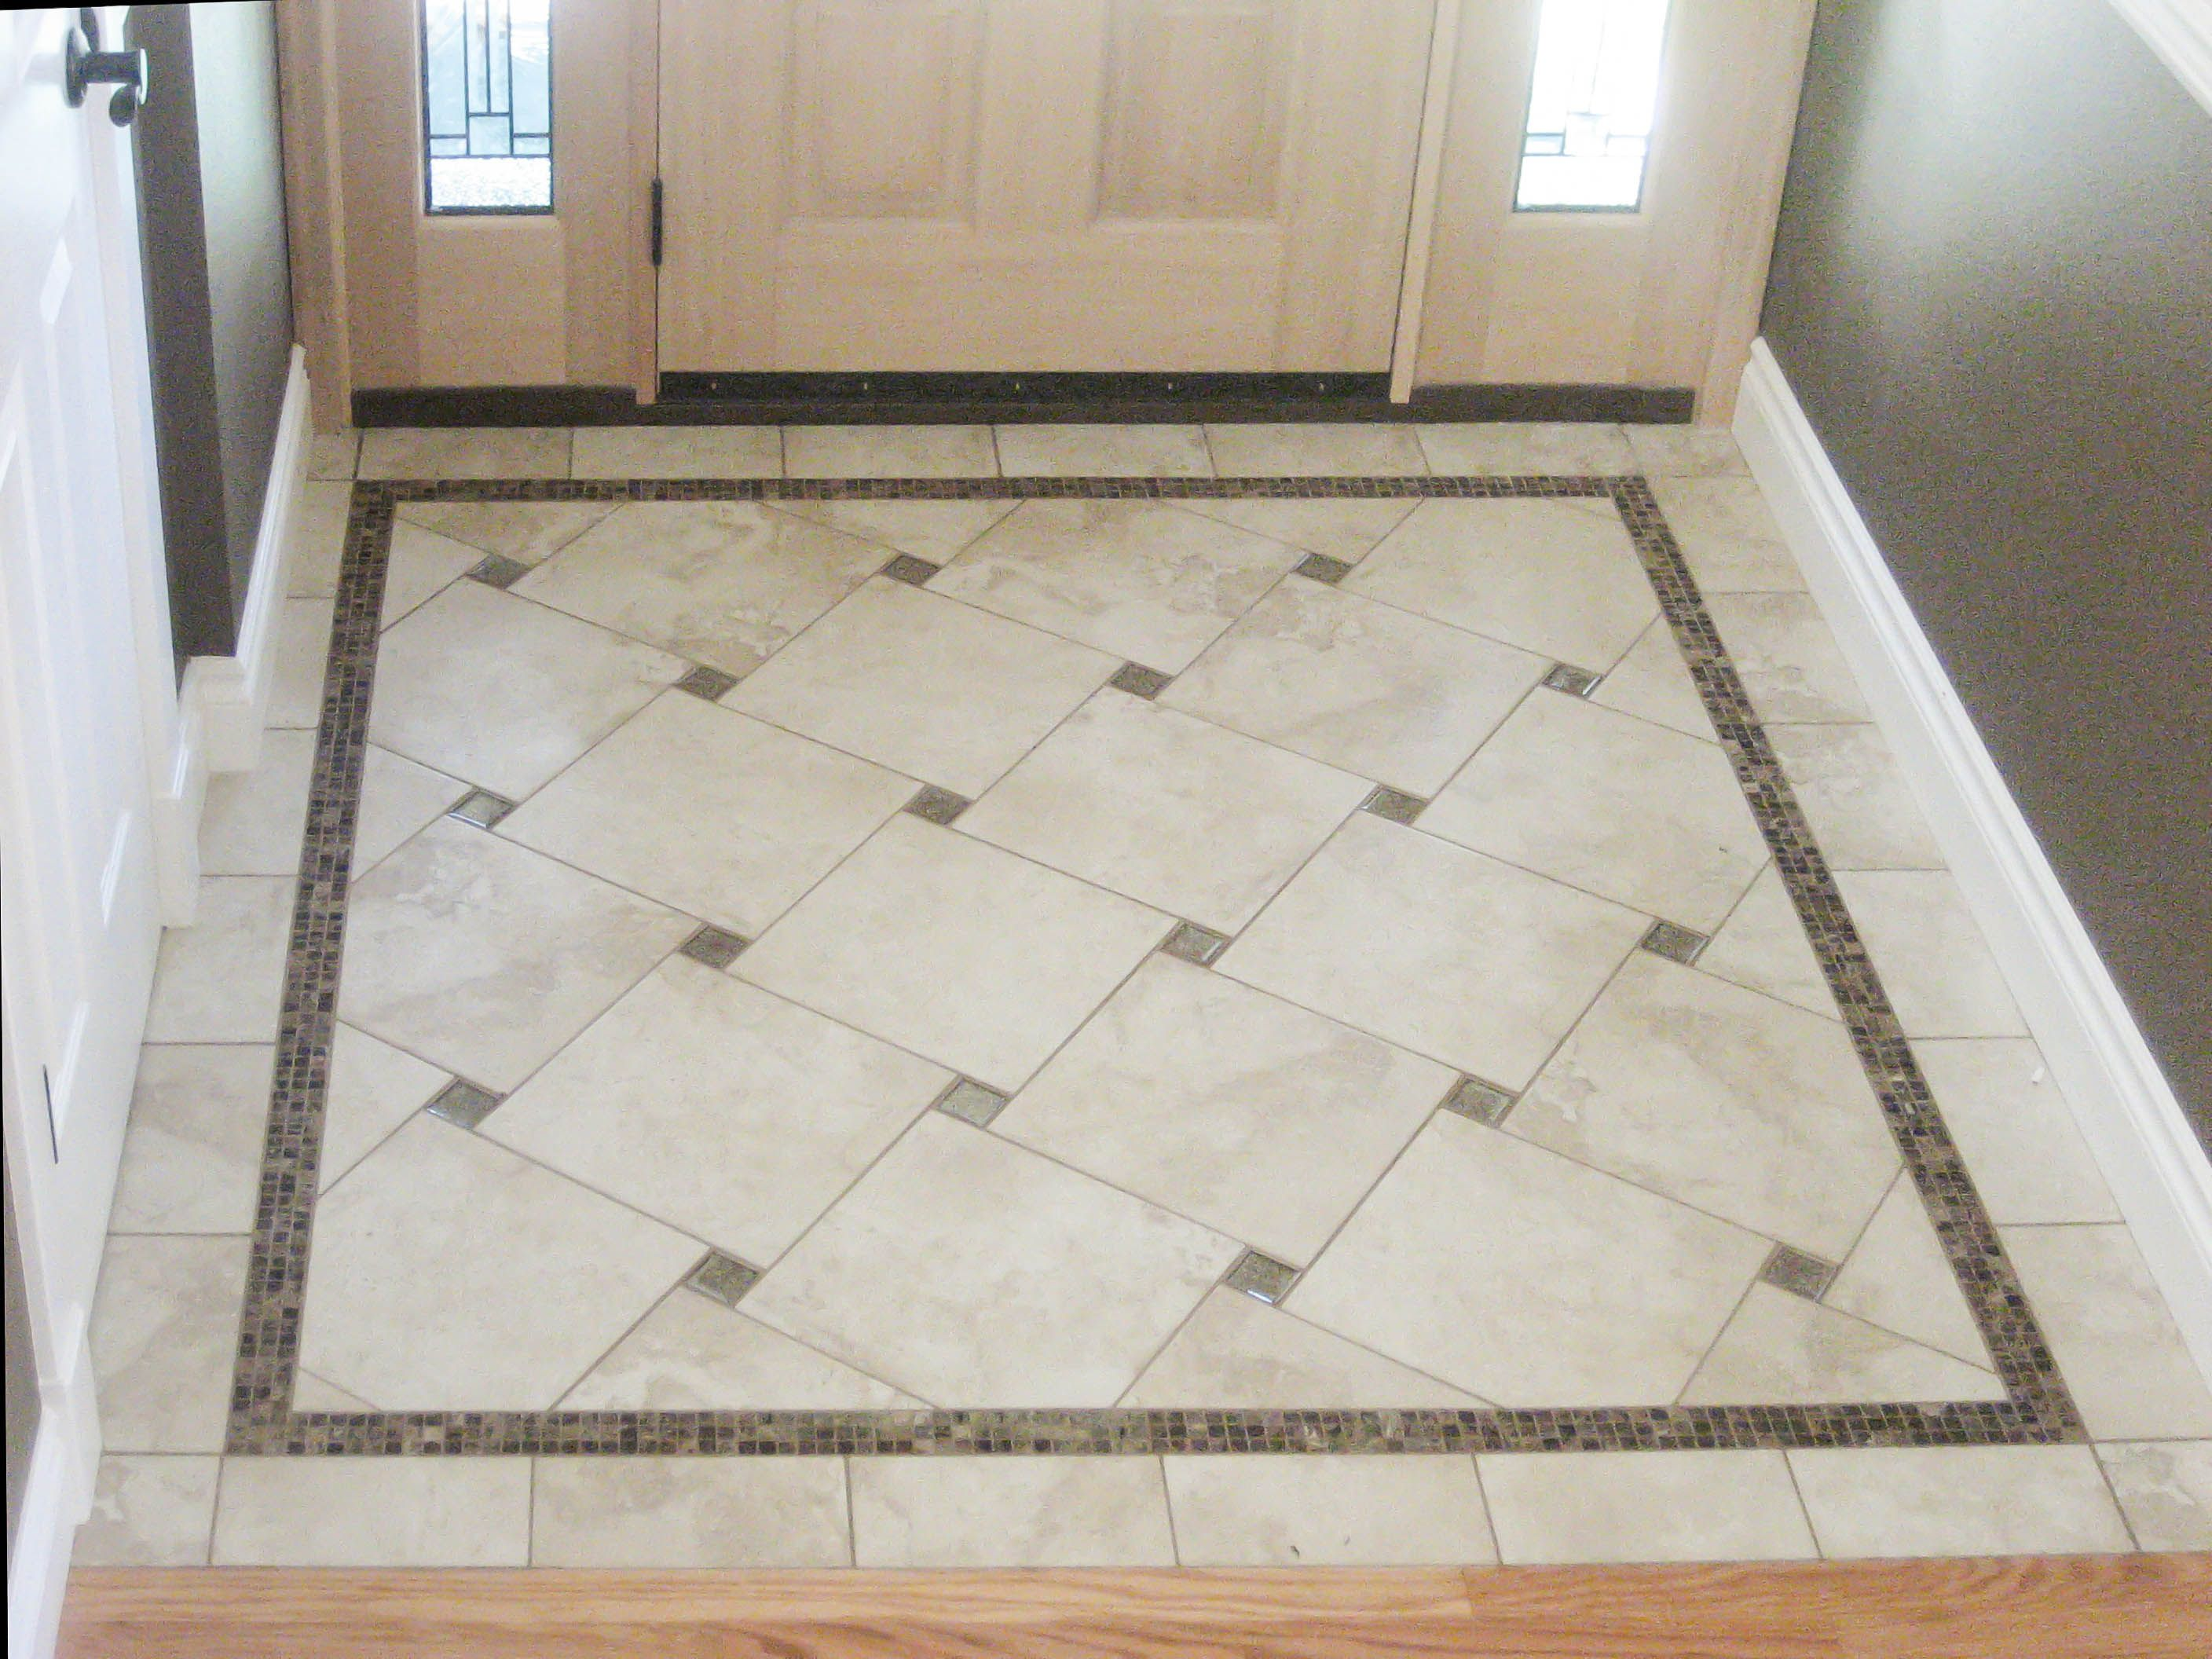 Entry Floor Tile Ideas | Entry Floor Photos Gallery   Seattle Tile  Contractor | IRC Tile Servic